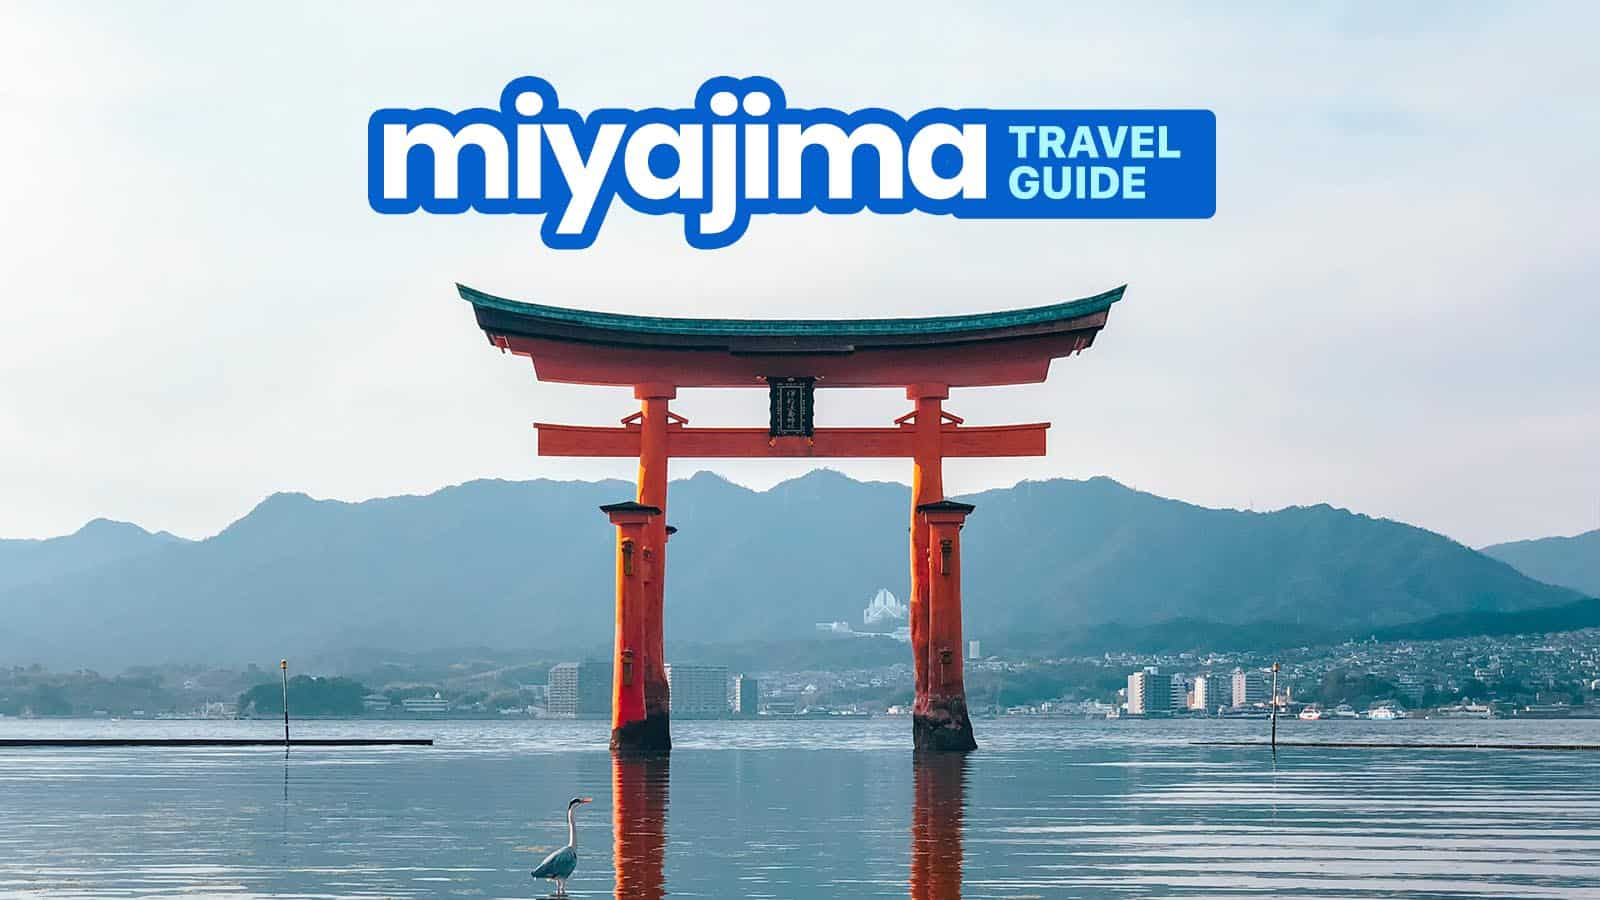 MIYAJIMA TRAVEL GUIDE with Budget Itinerary